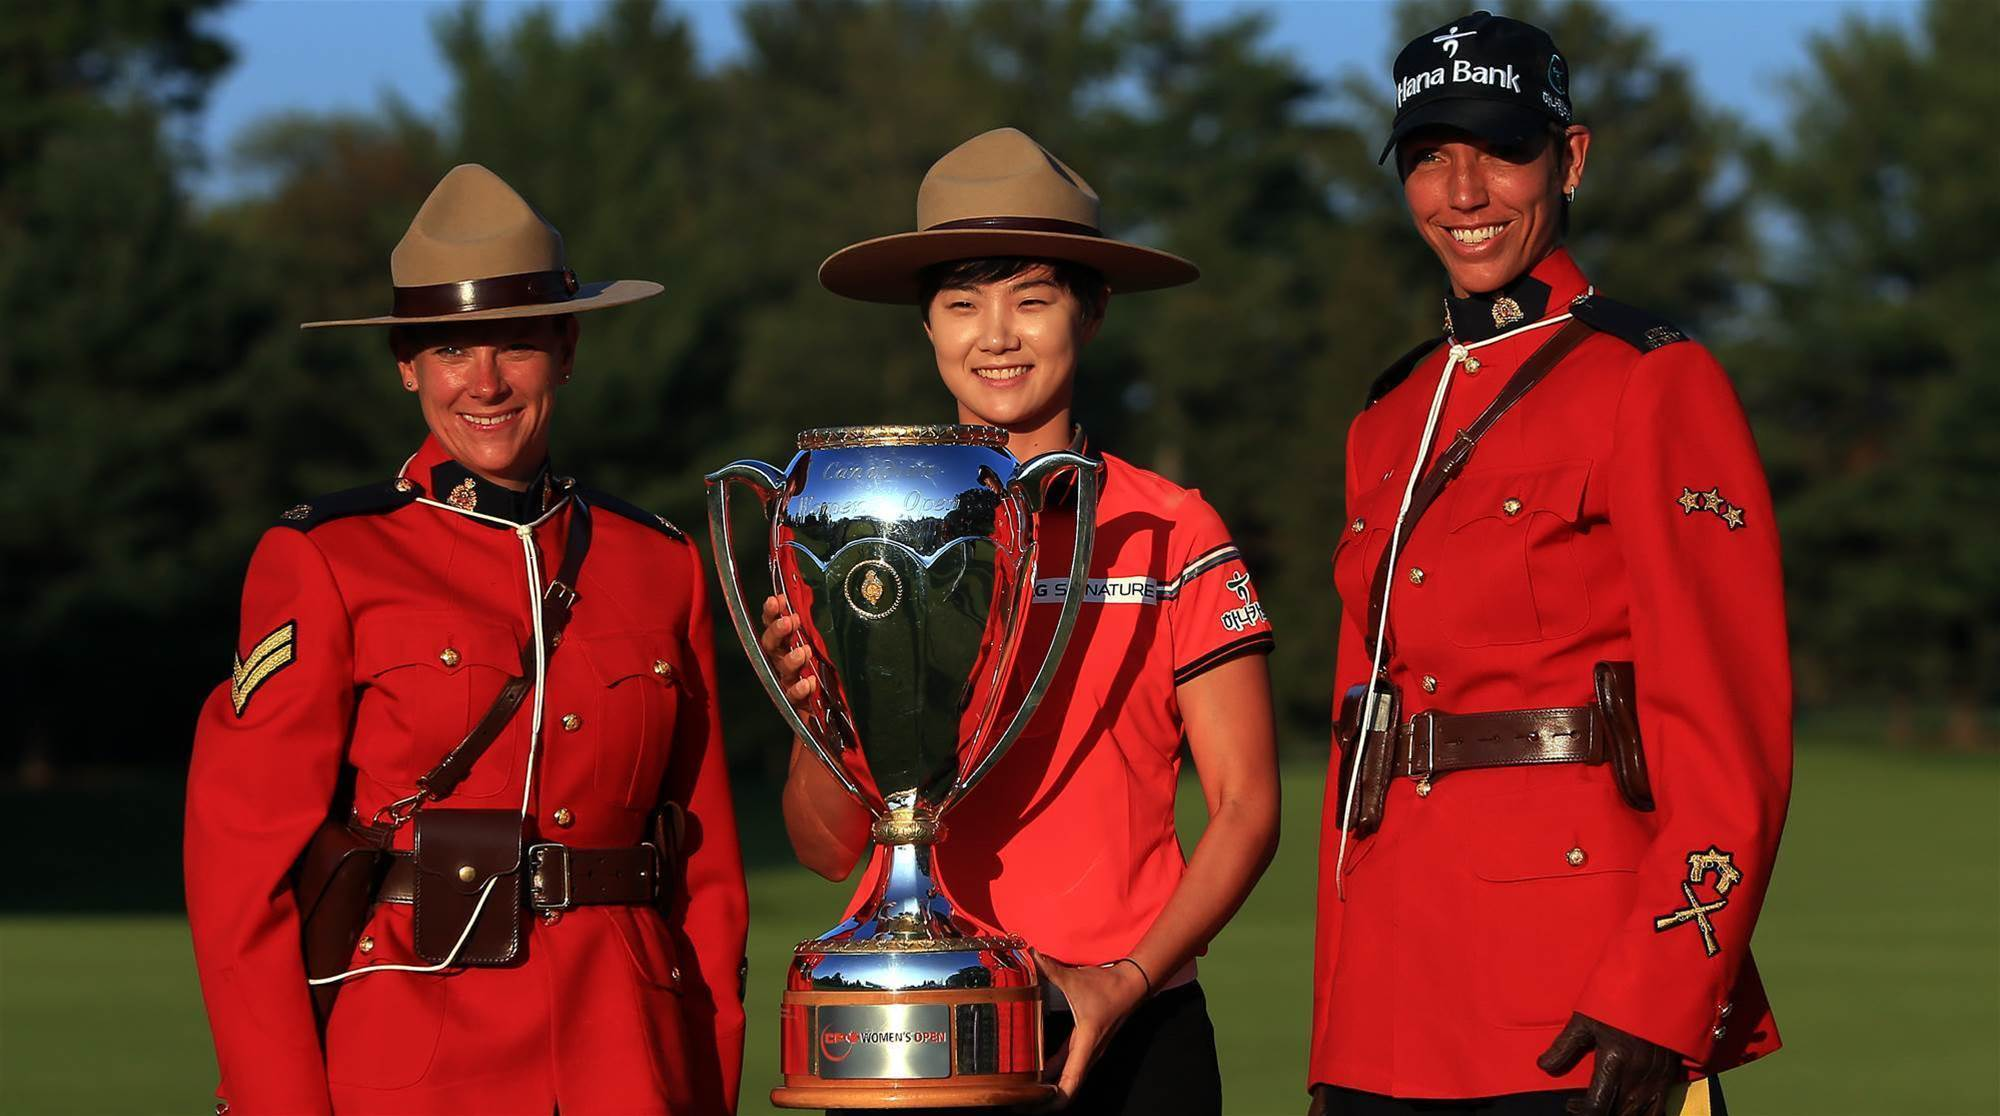 LPGA TOUR: Sung Hyun Park storms home to win the CP Women's Open